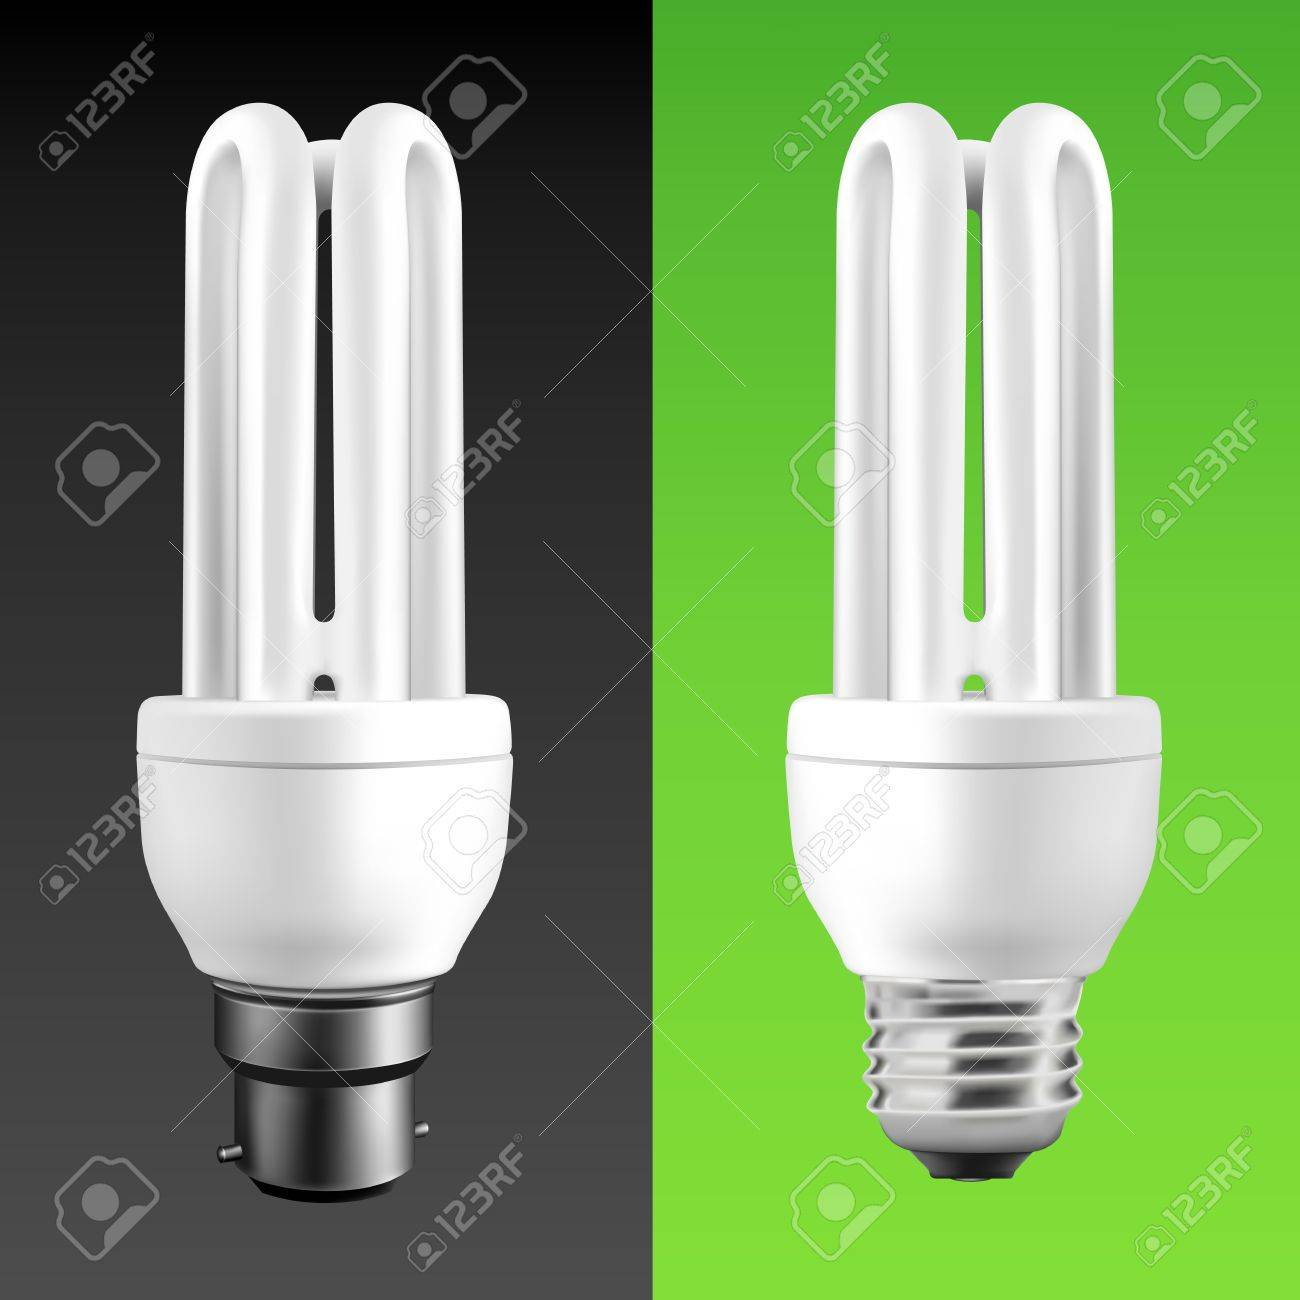 Energy Saving Fluorescent Light Bulbs (EPS10) Stock Vector - 11325054